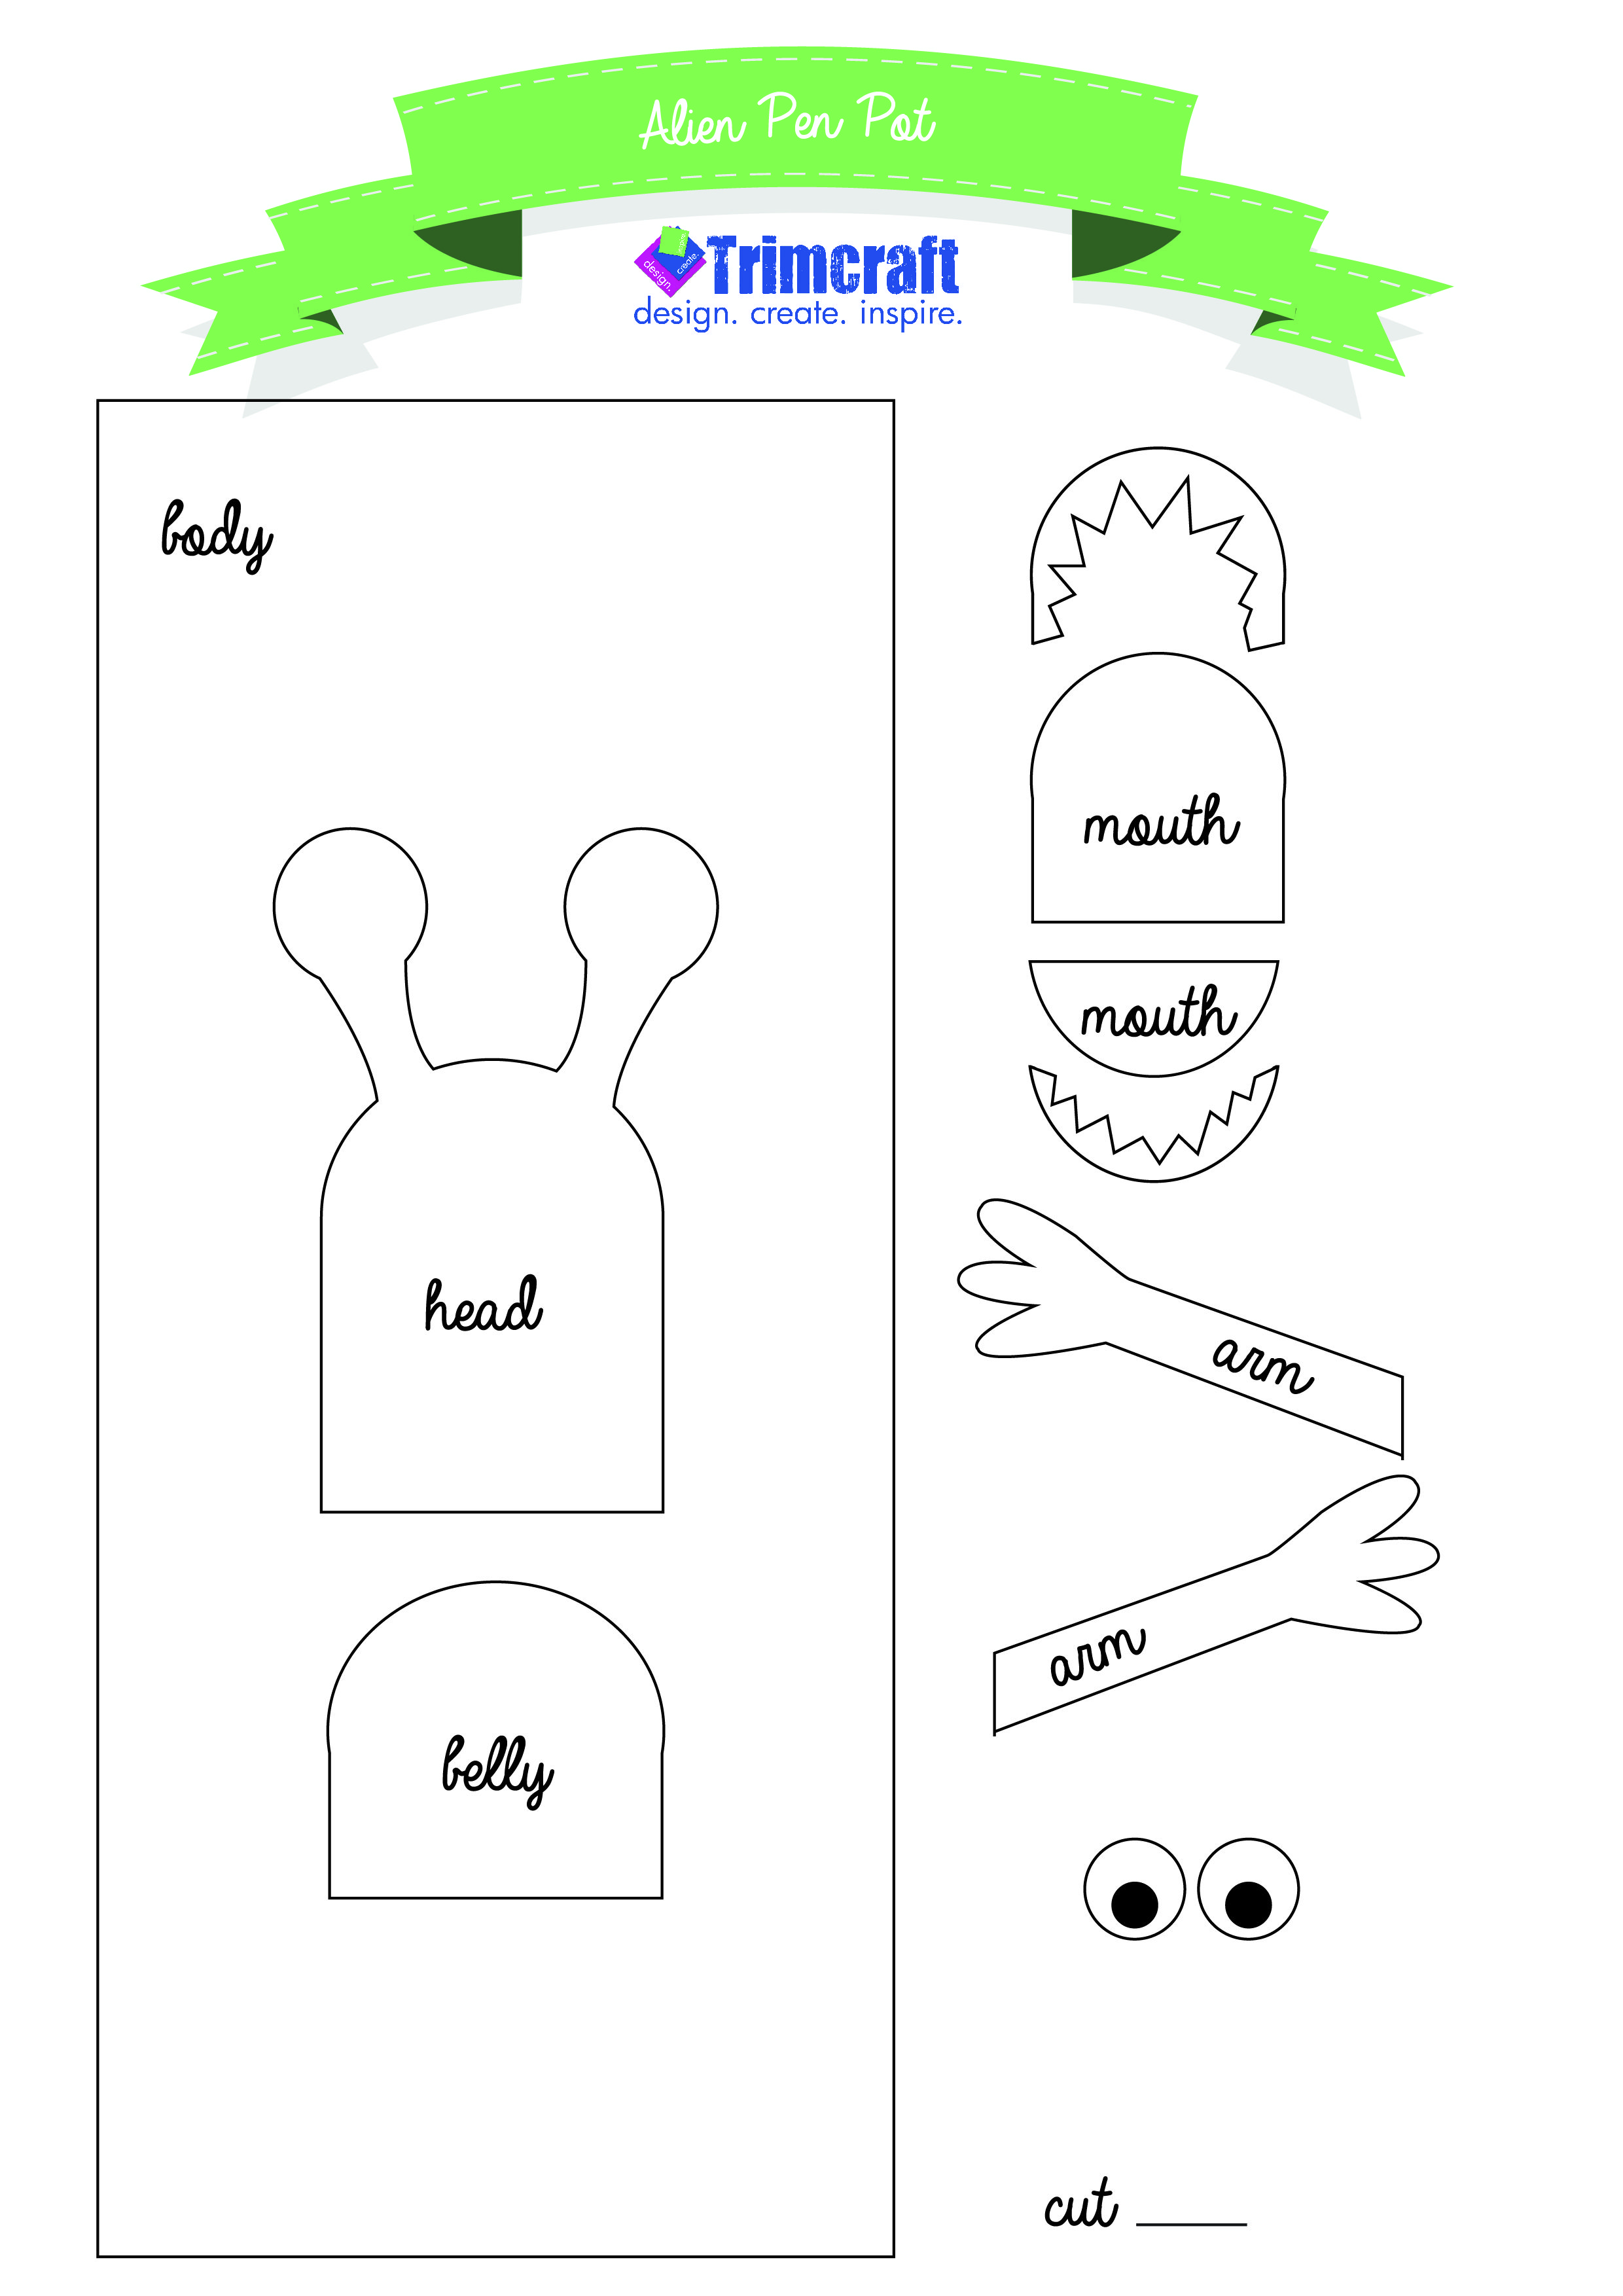 Pin by Gwen Geraets on 4-H Ideas | Pinterest | Kids craft projects ...